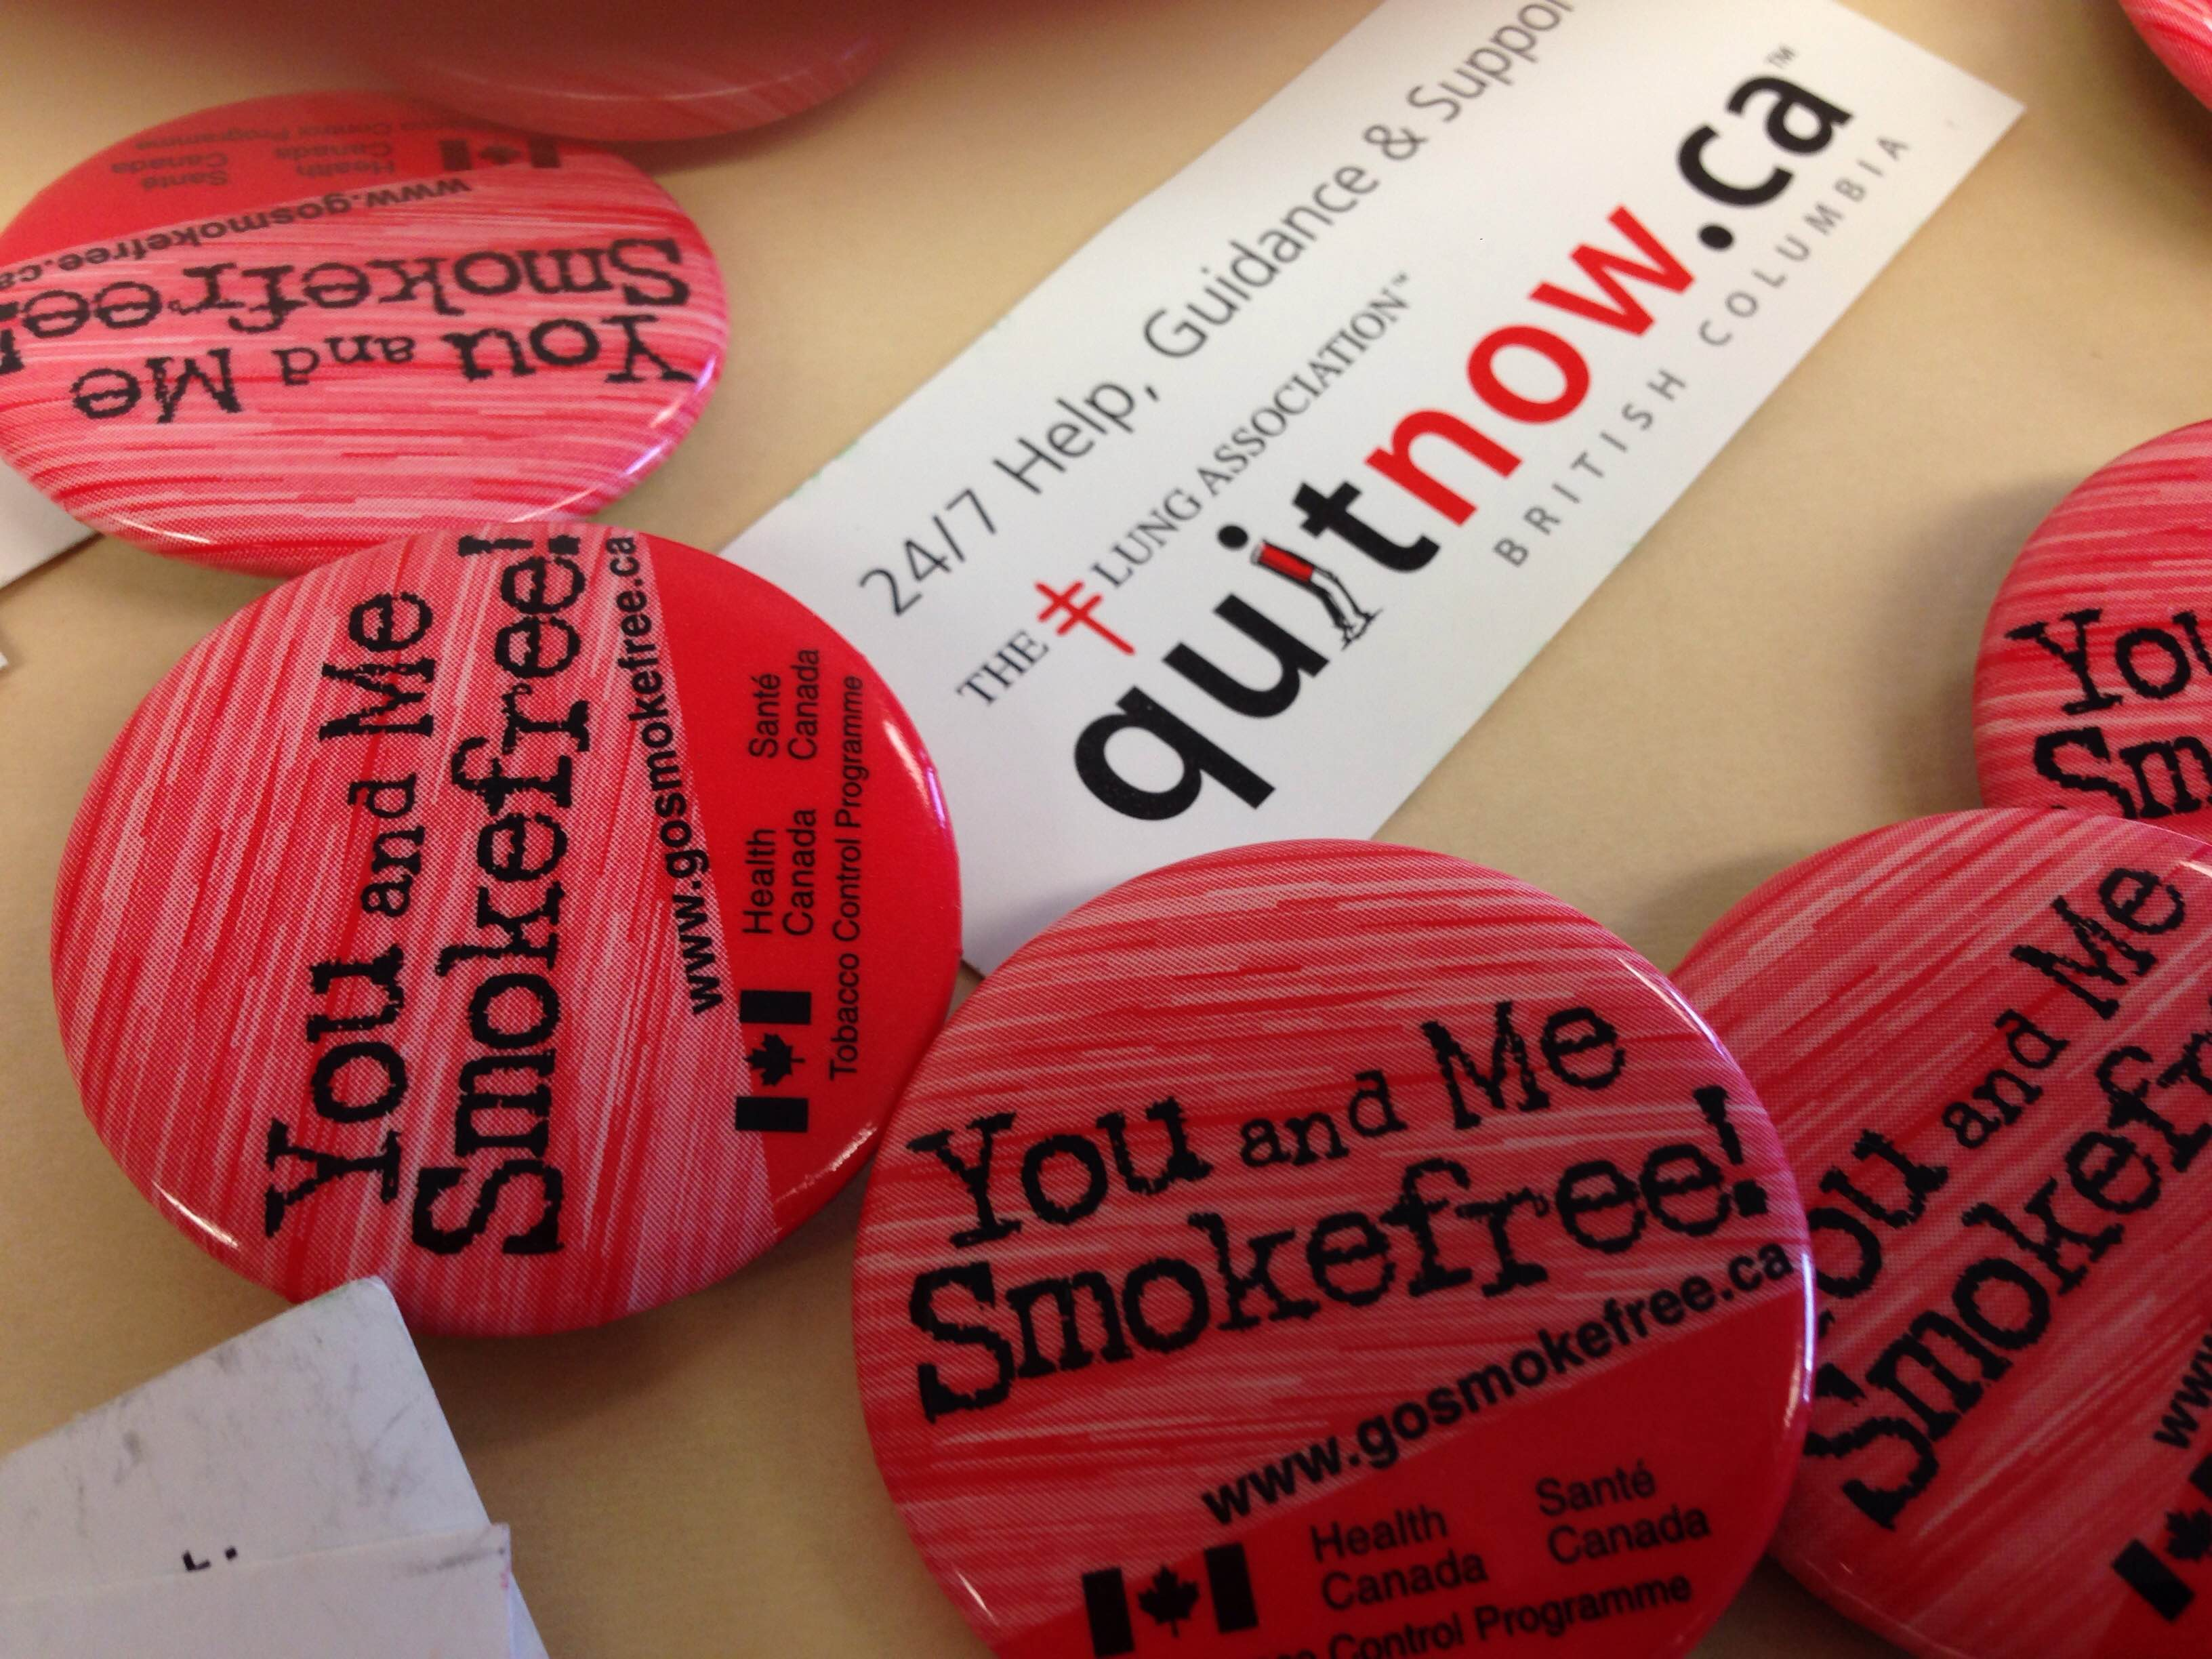 Quit smoking program ephemera from 2008 – does this look dated to anyone else? Photograph by, Cindy McLellan.